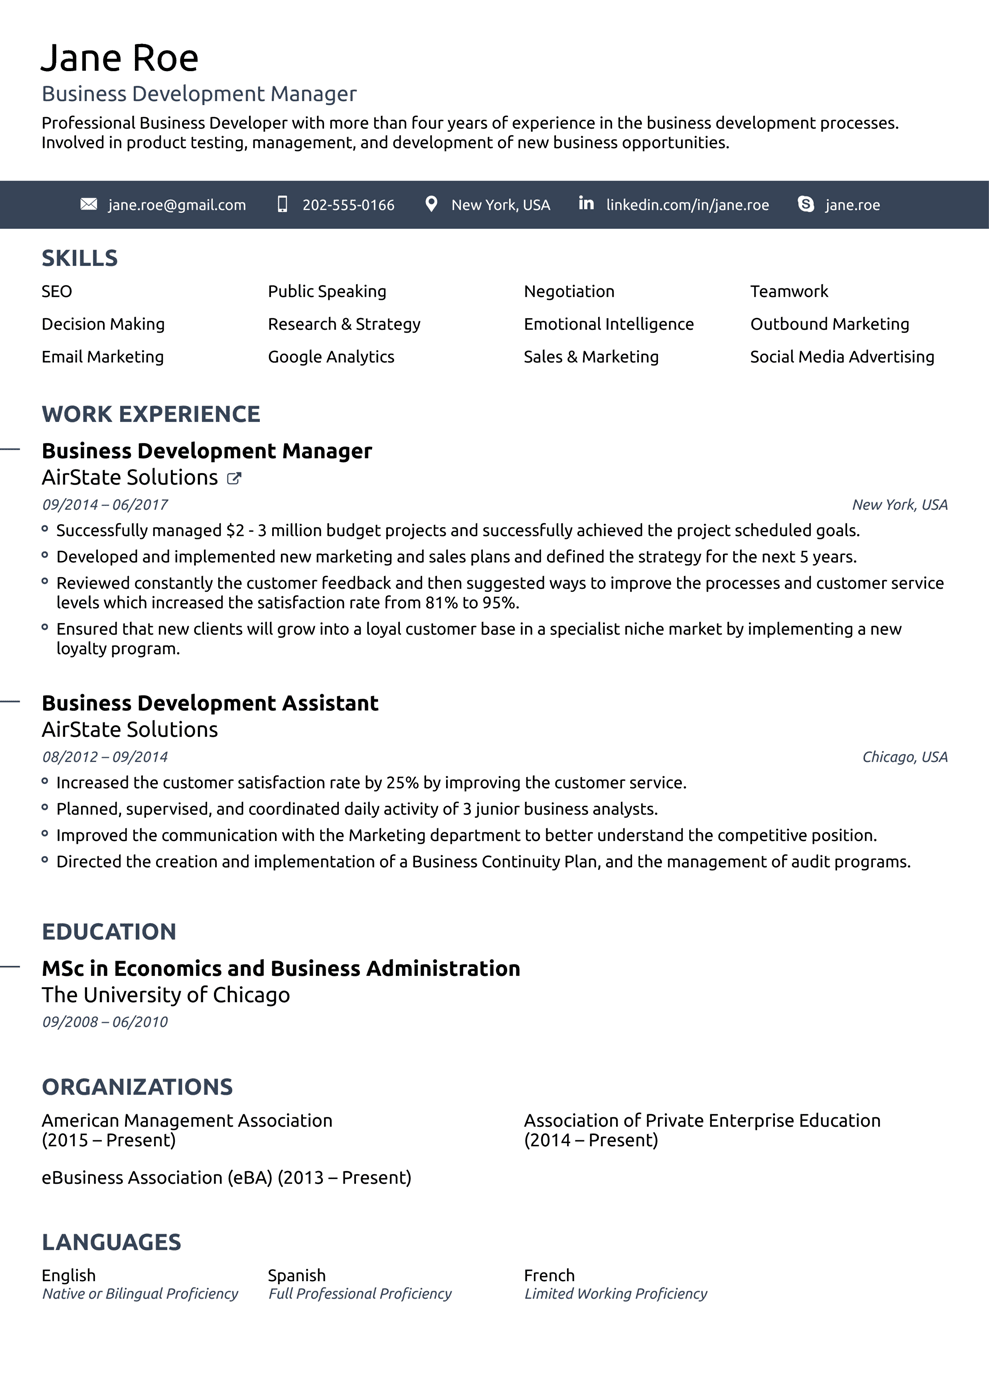 Free Downloadable Resume | 8 Best Online Resume Templates Of 2019 Download Customize